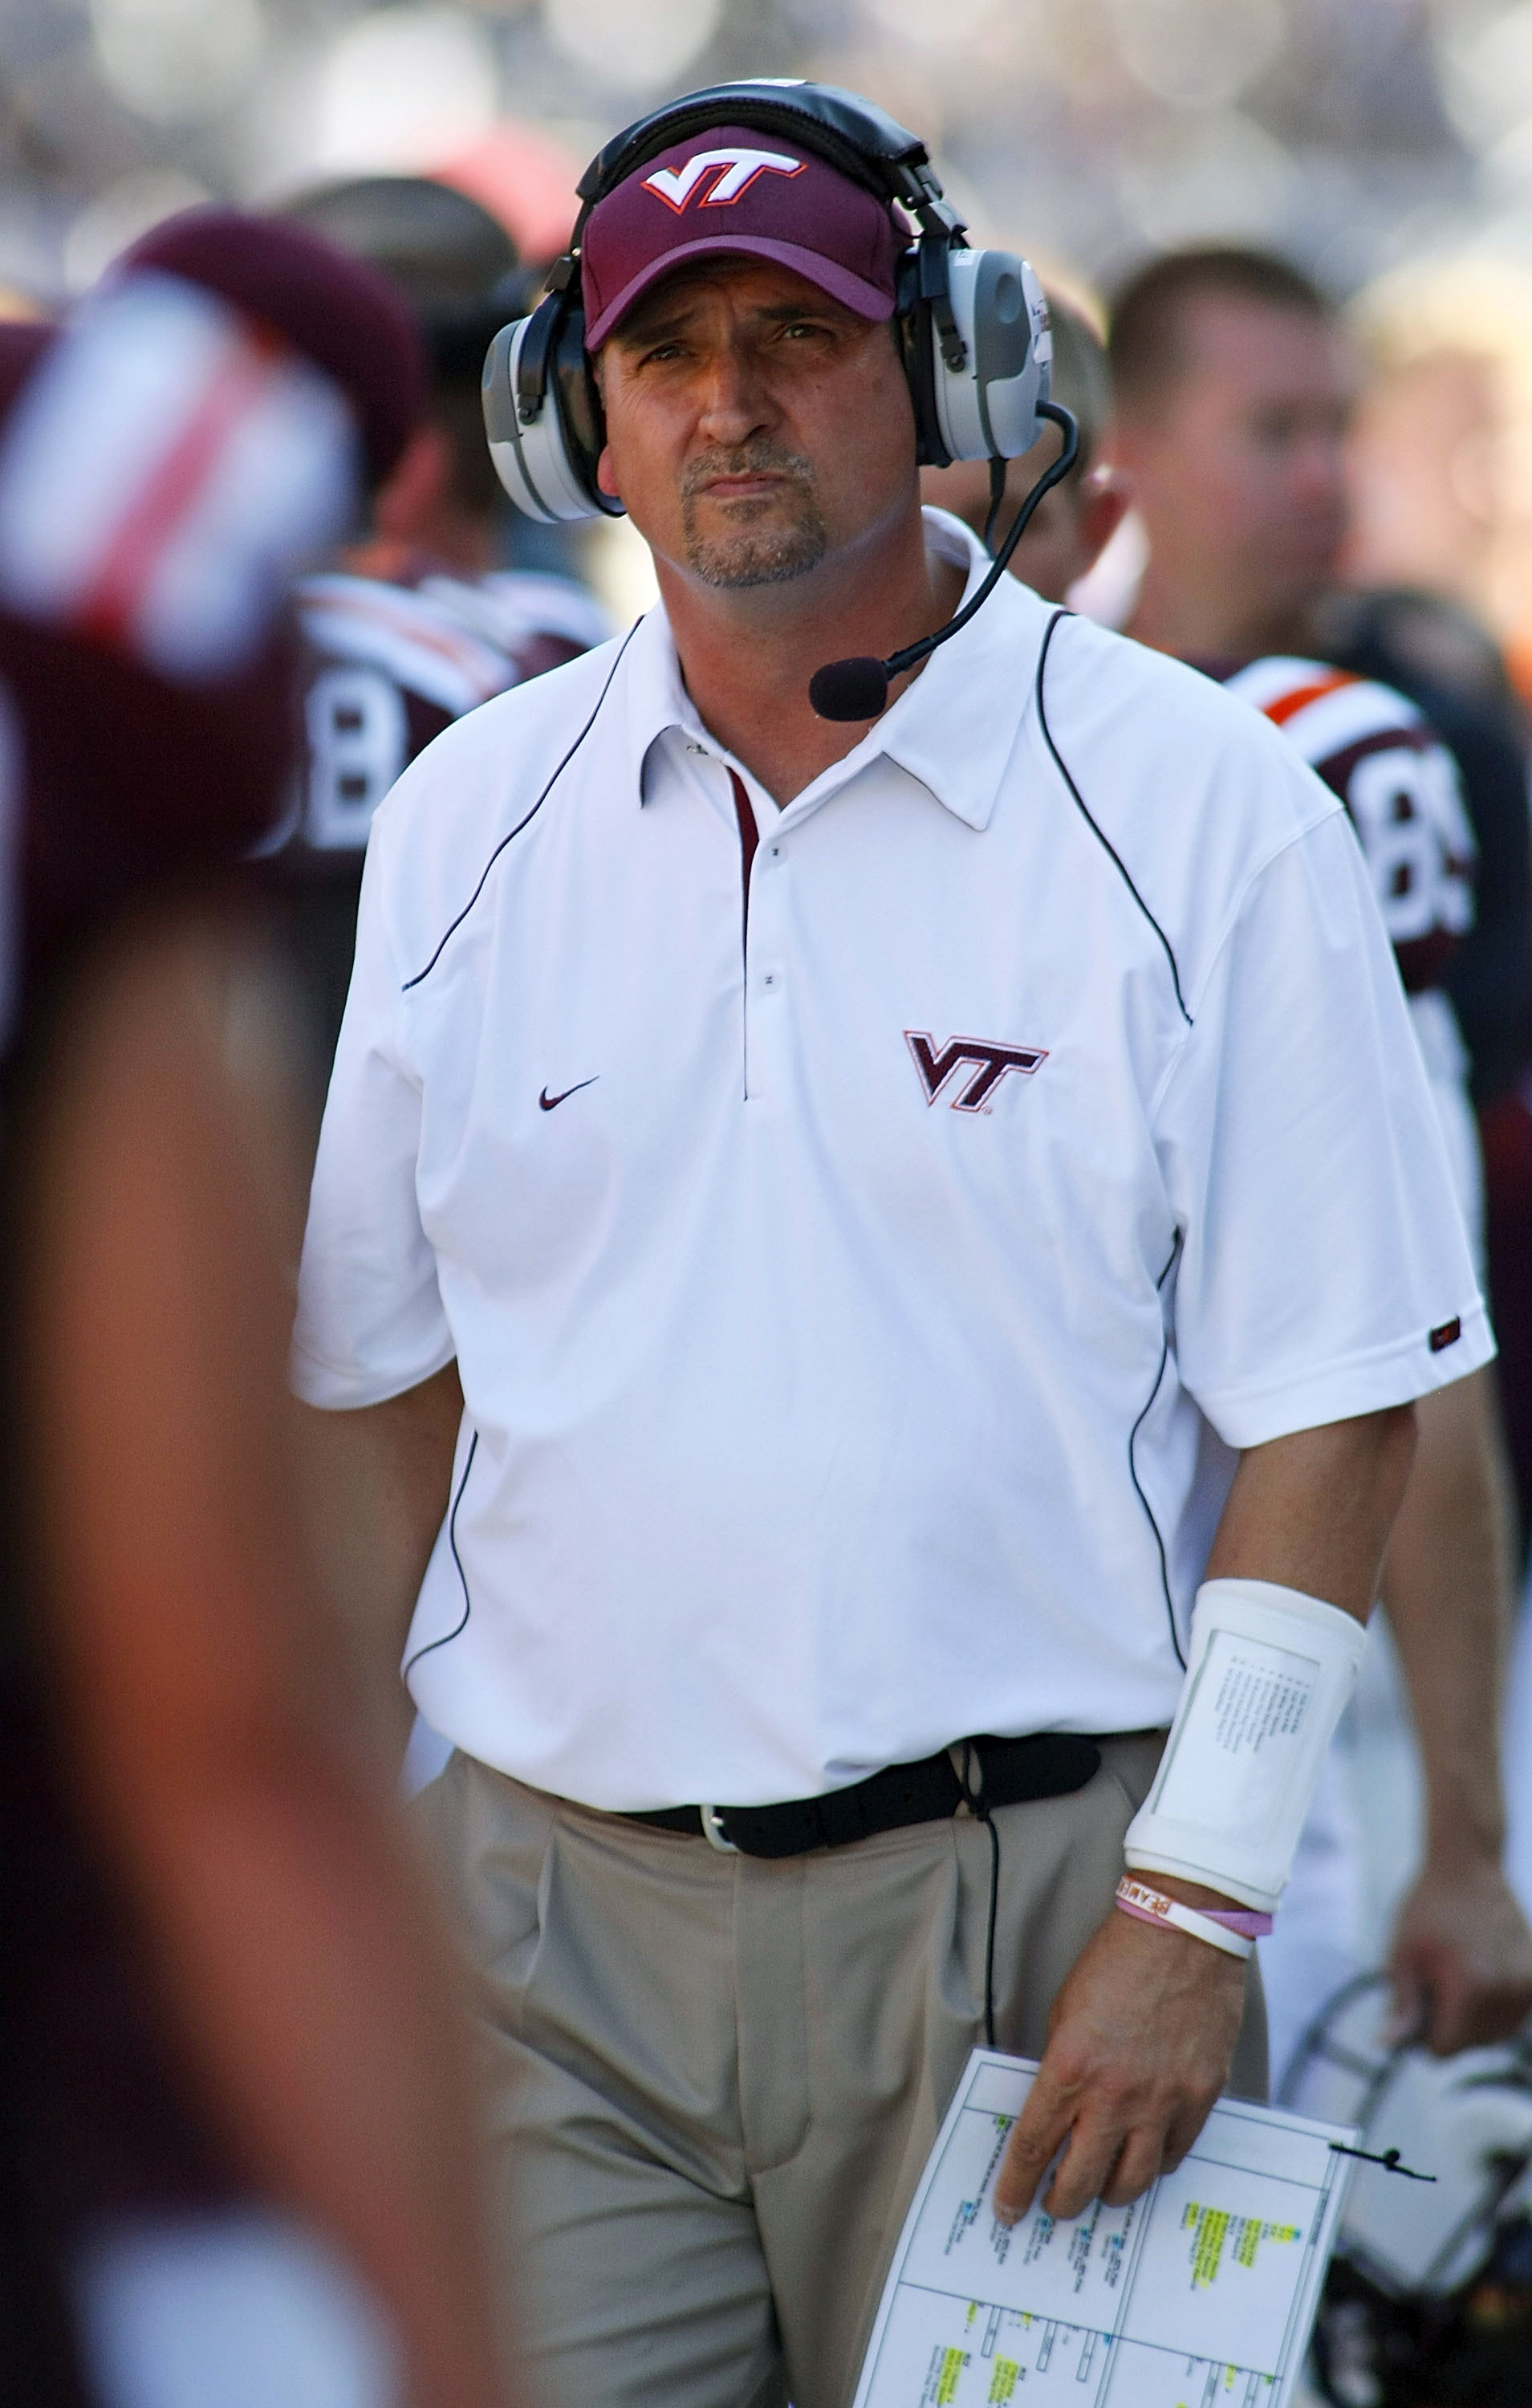 BLACKSBURG, VA - SEPTEMBER 18: Virginia Tech Hokies defensive coordinator Bud Foster watches from the sidelines against the East Carolina Pirates at Lane Stadium on September 18, 2010 in Blacksburg, Virginia.  (Photo by Geoff Burke/Getty Images)